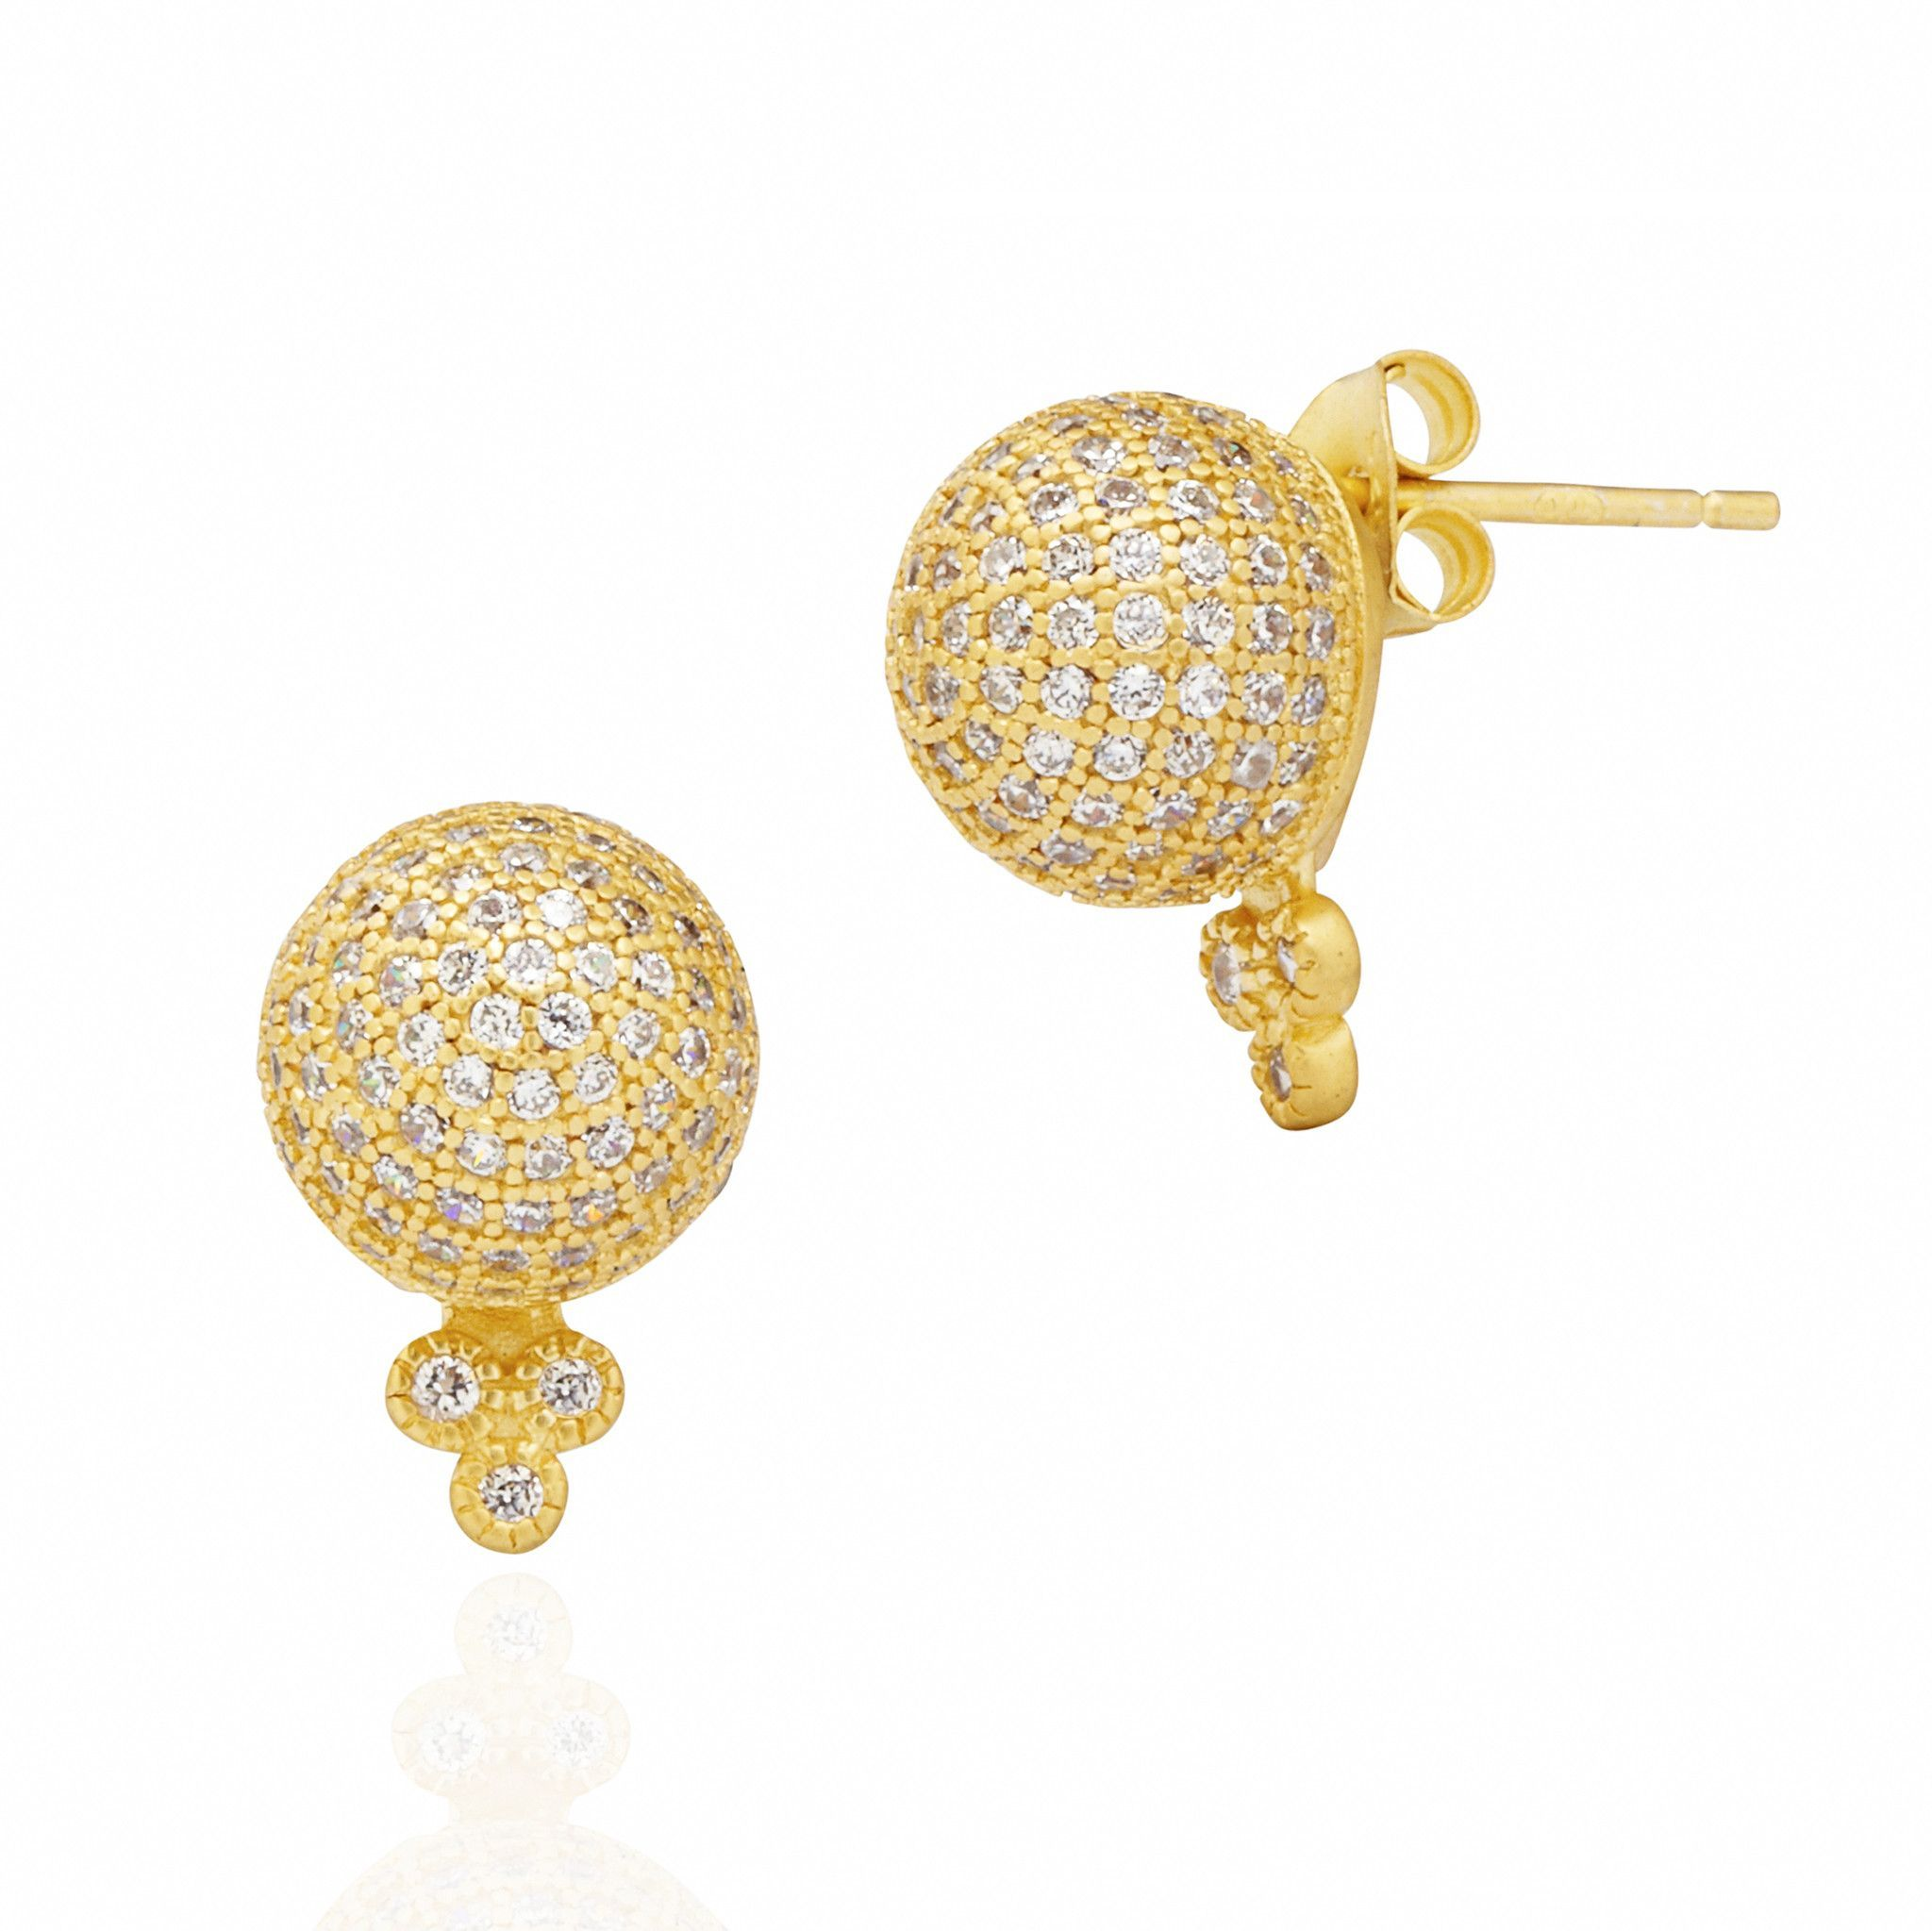 Pave Ball Stud Earring